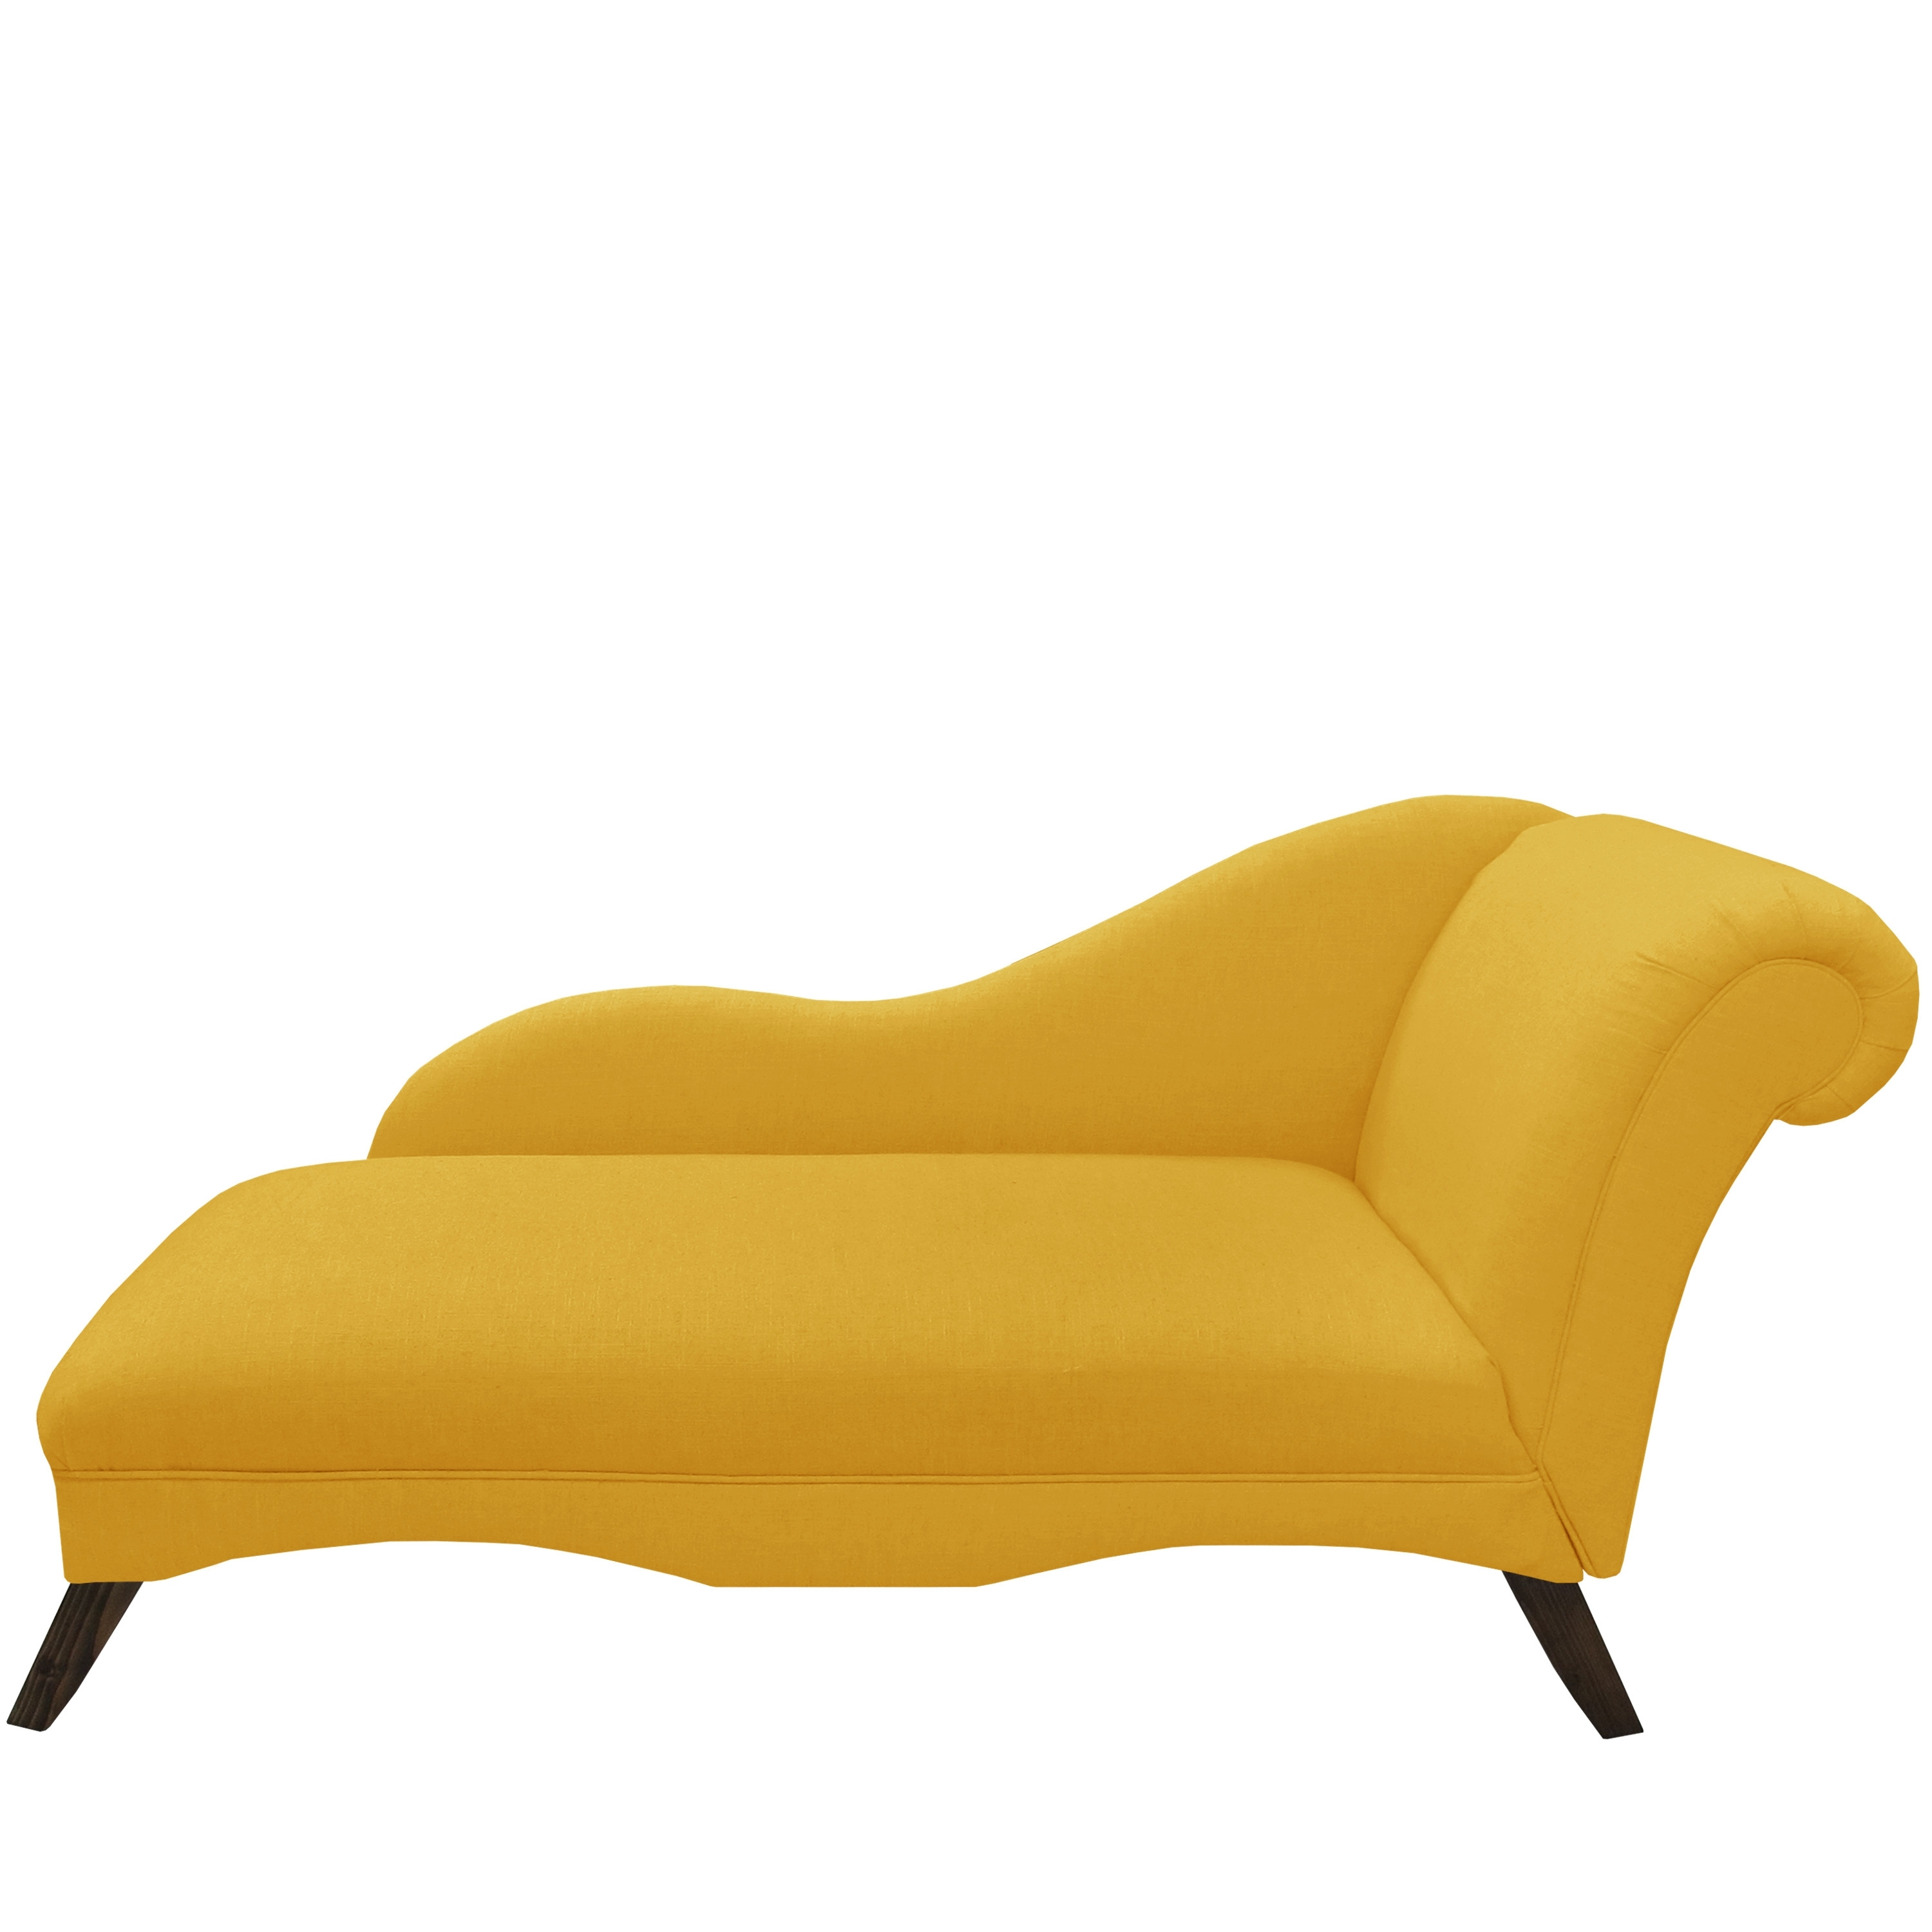 Nonsensical Modern Chaise – Home Designing Throughout Preferred Yellow Chaise Lounge Chairs (View 4 of 15)